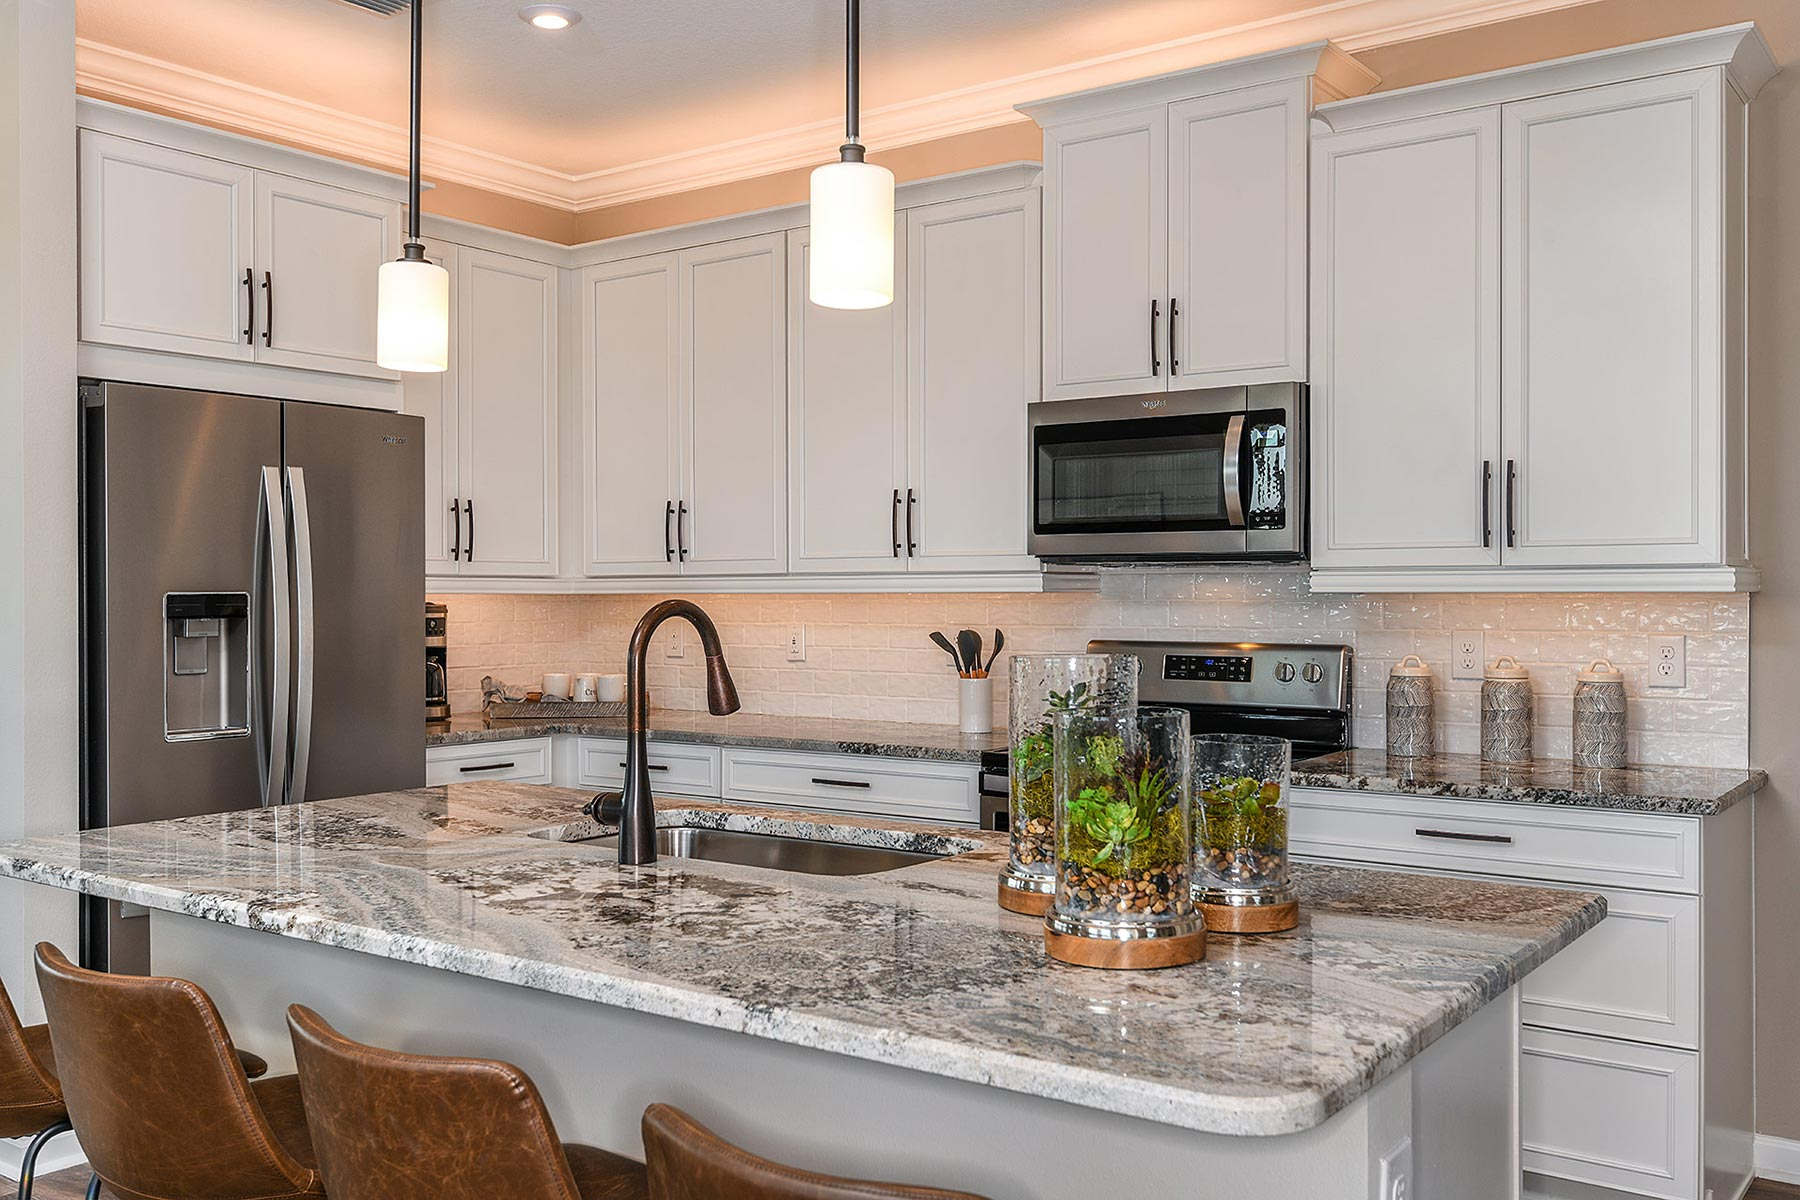 Bonavie Cove Kitchen in Fort Myers Florida by Mattamy Homes